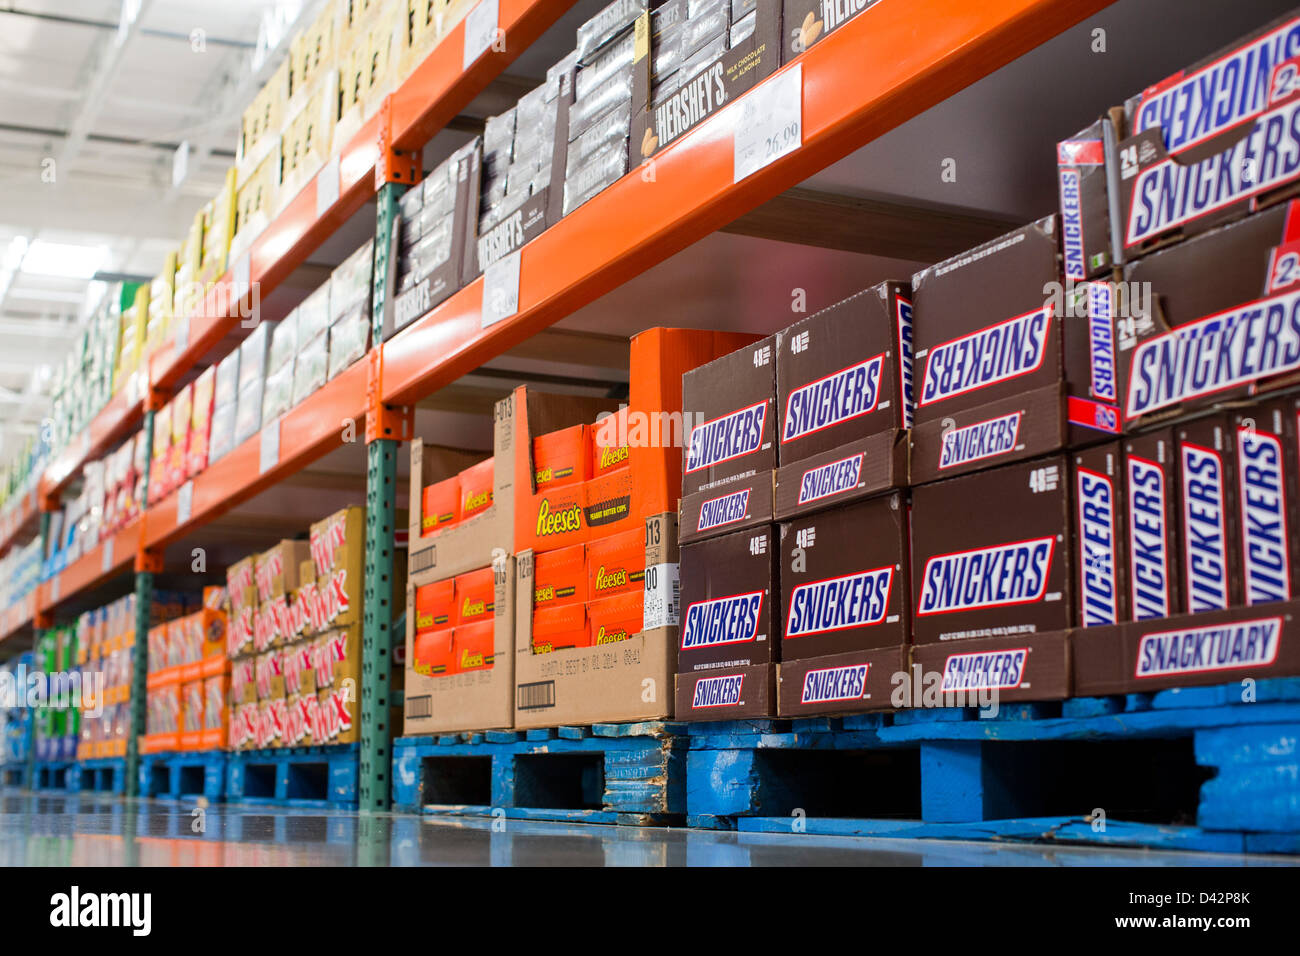 Reeses Peanut Butter Cups Stock Photos & Reeses Peanut